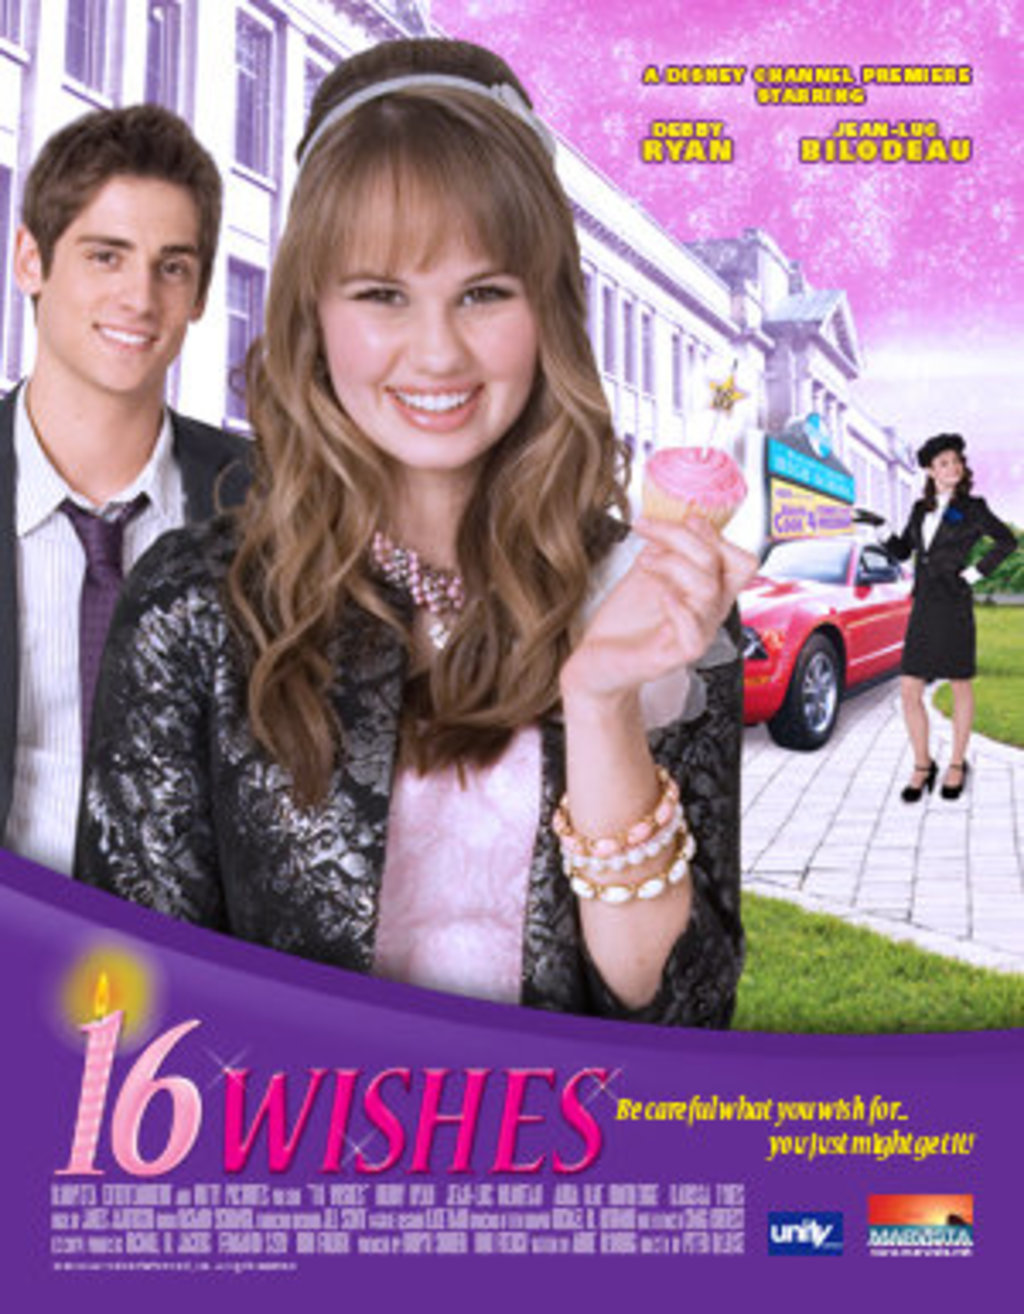 16 Wishes Movie Still 2